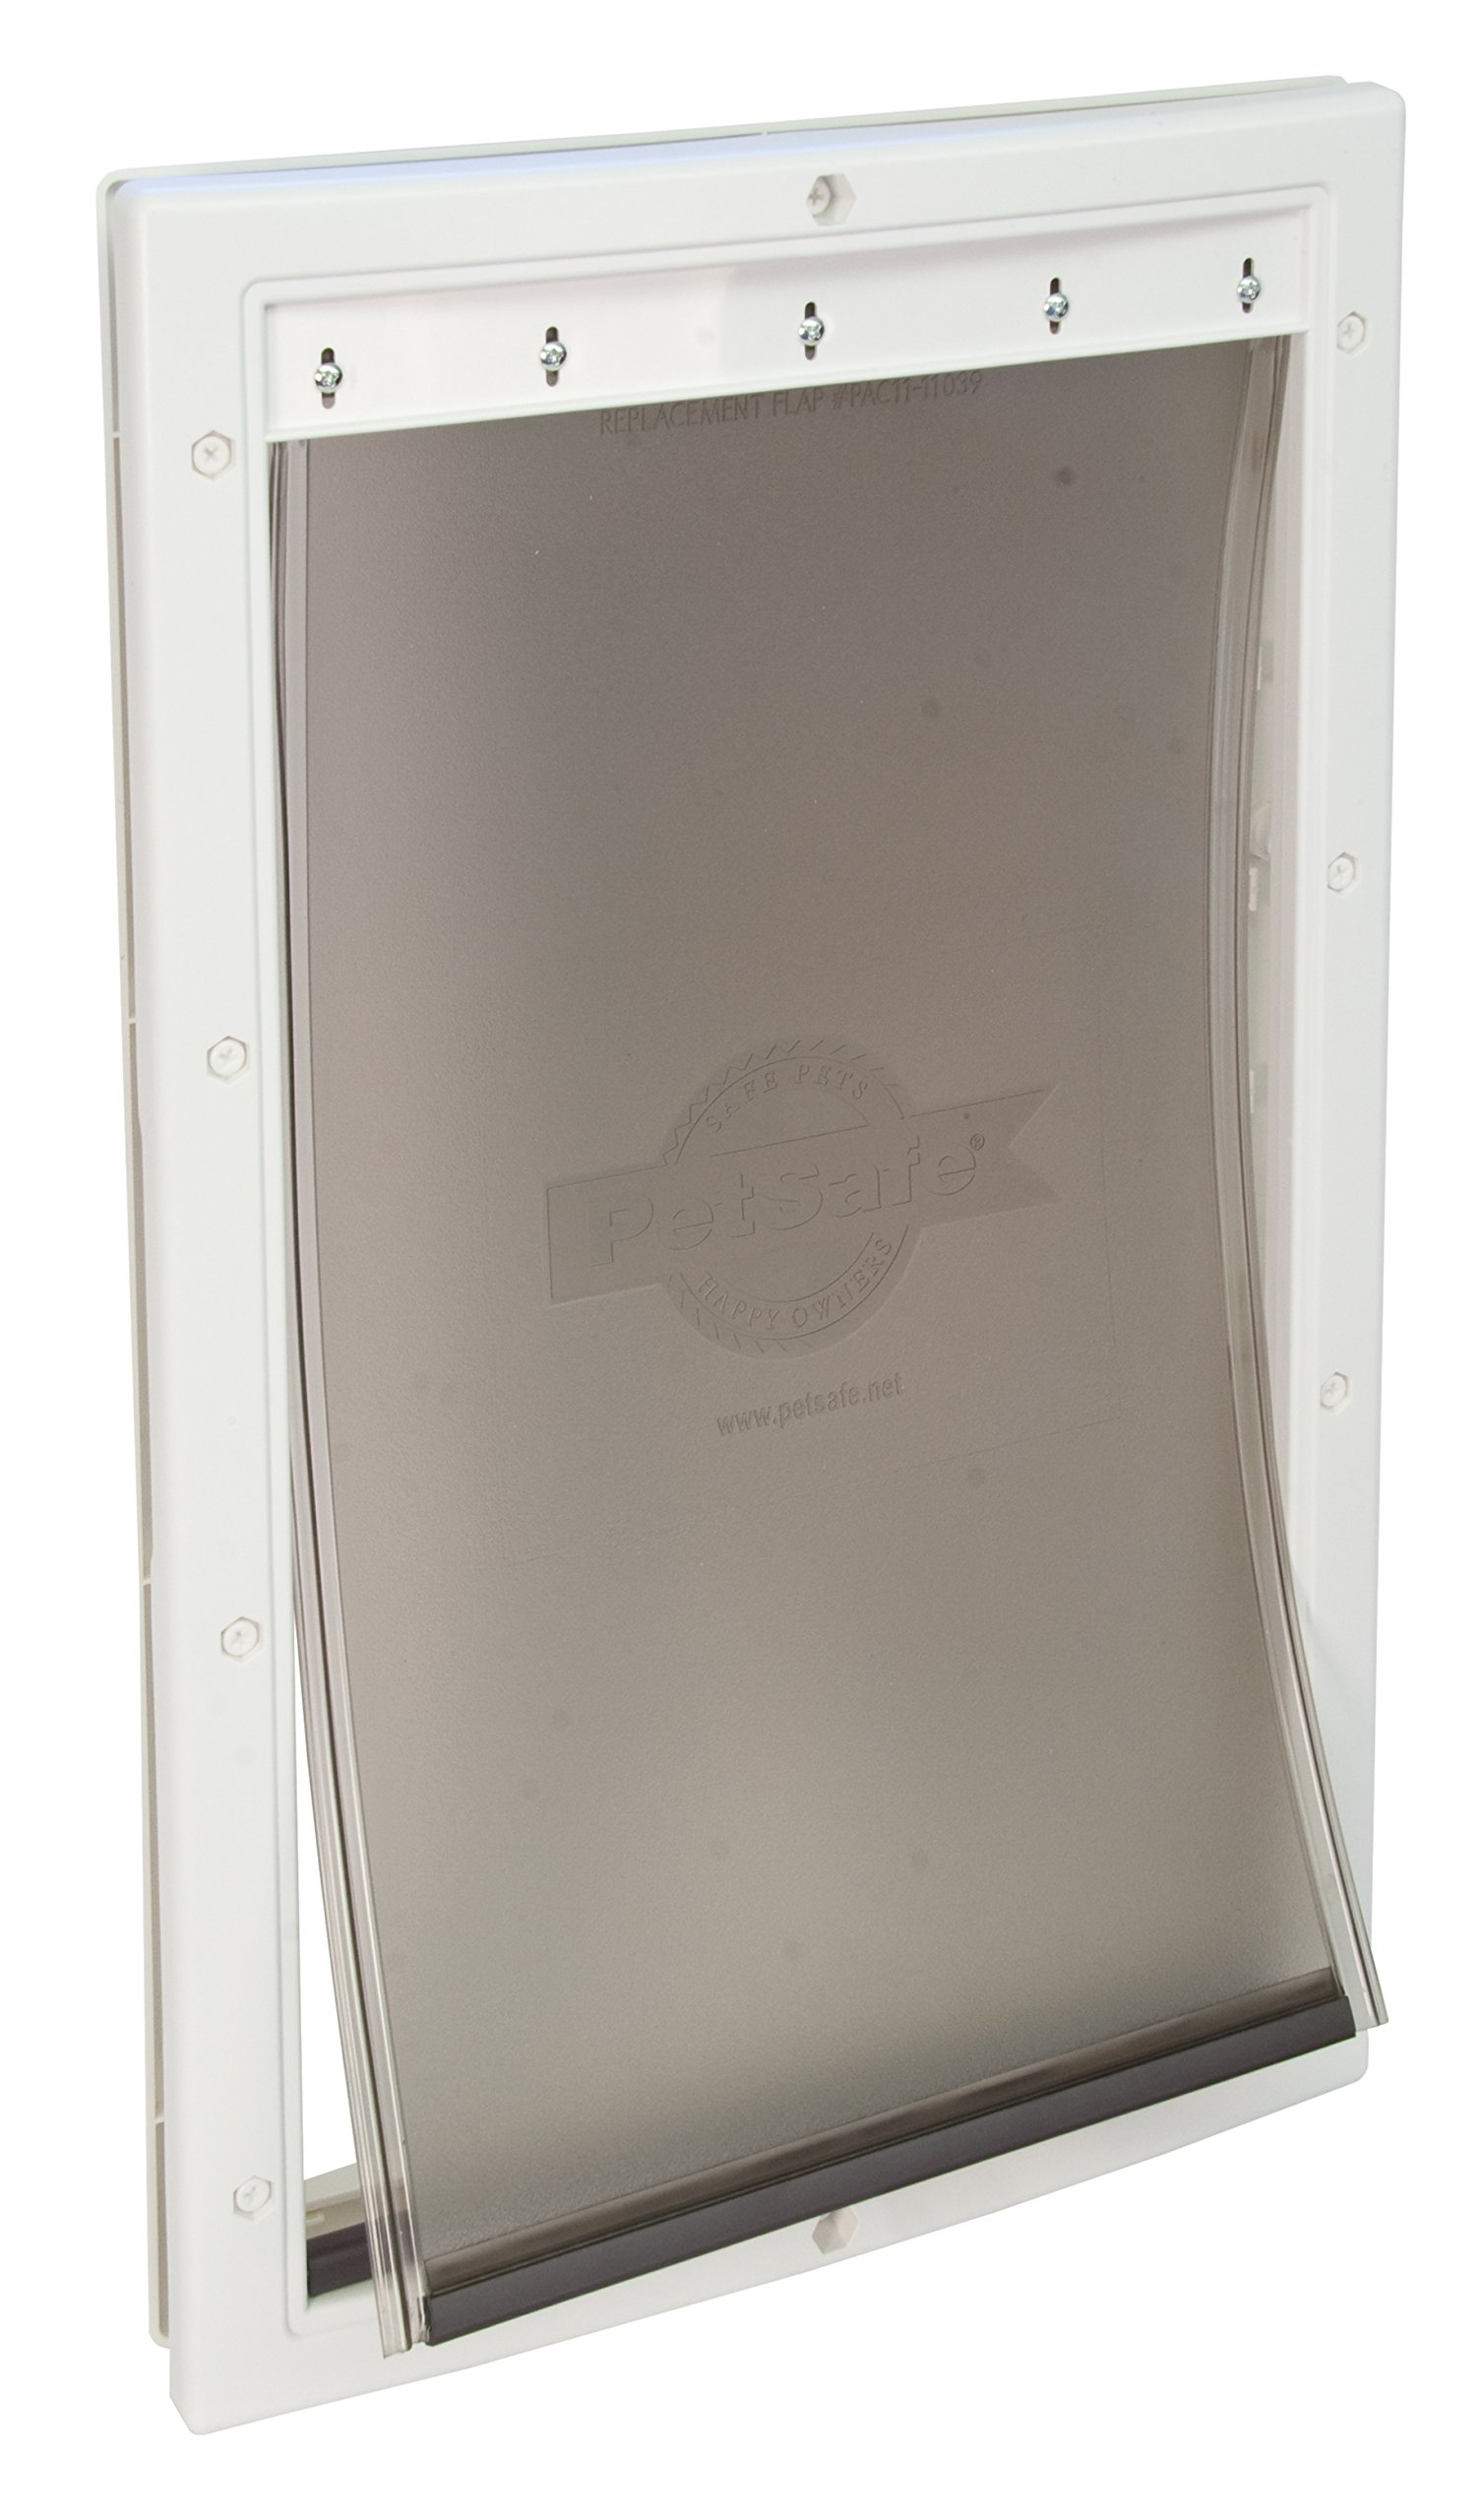 PetSafe Plastic Pet Door Large with Soft Tinted Flap, Paintable White Frame, for dogs up to 100 lb.